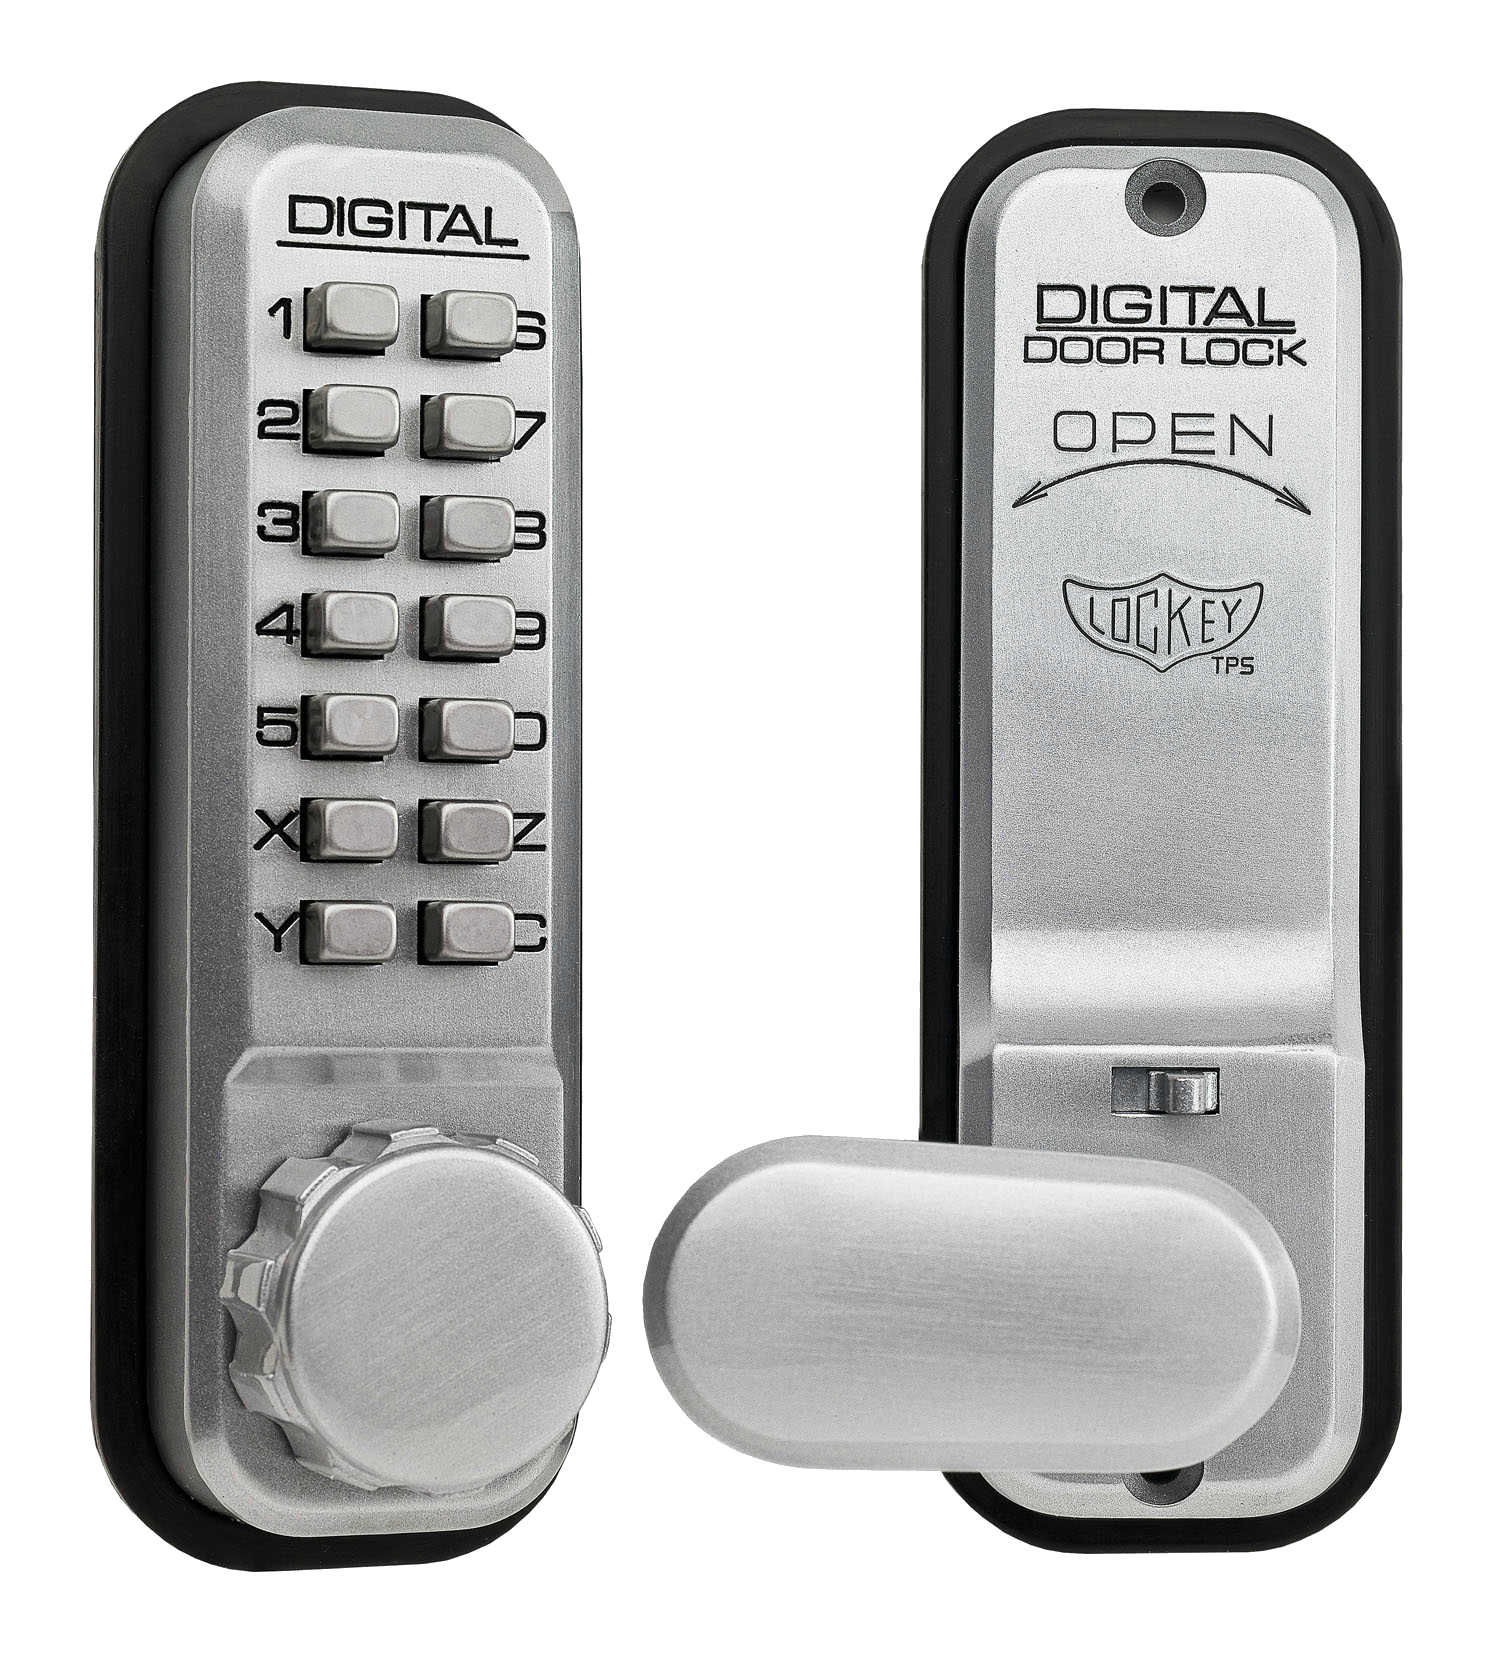 Lockey 2435 Keyless Door Lock